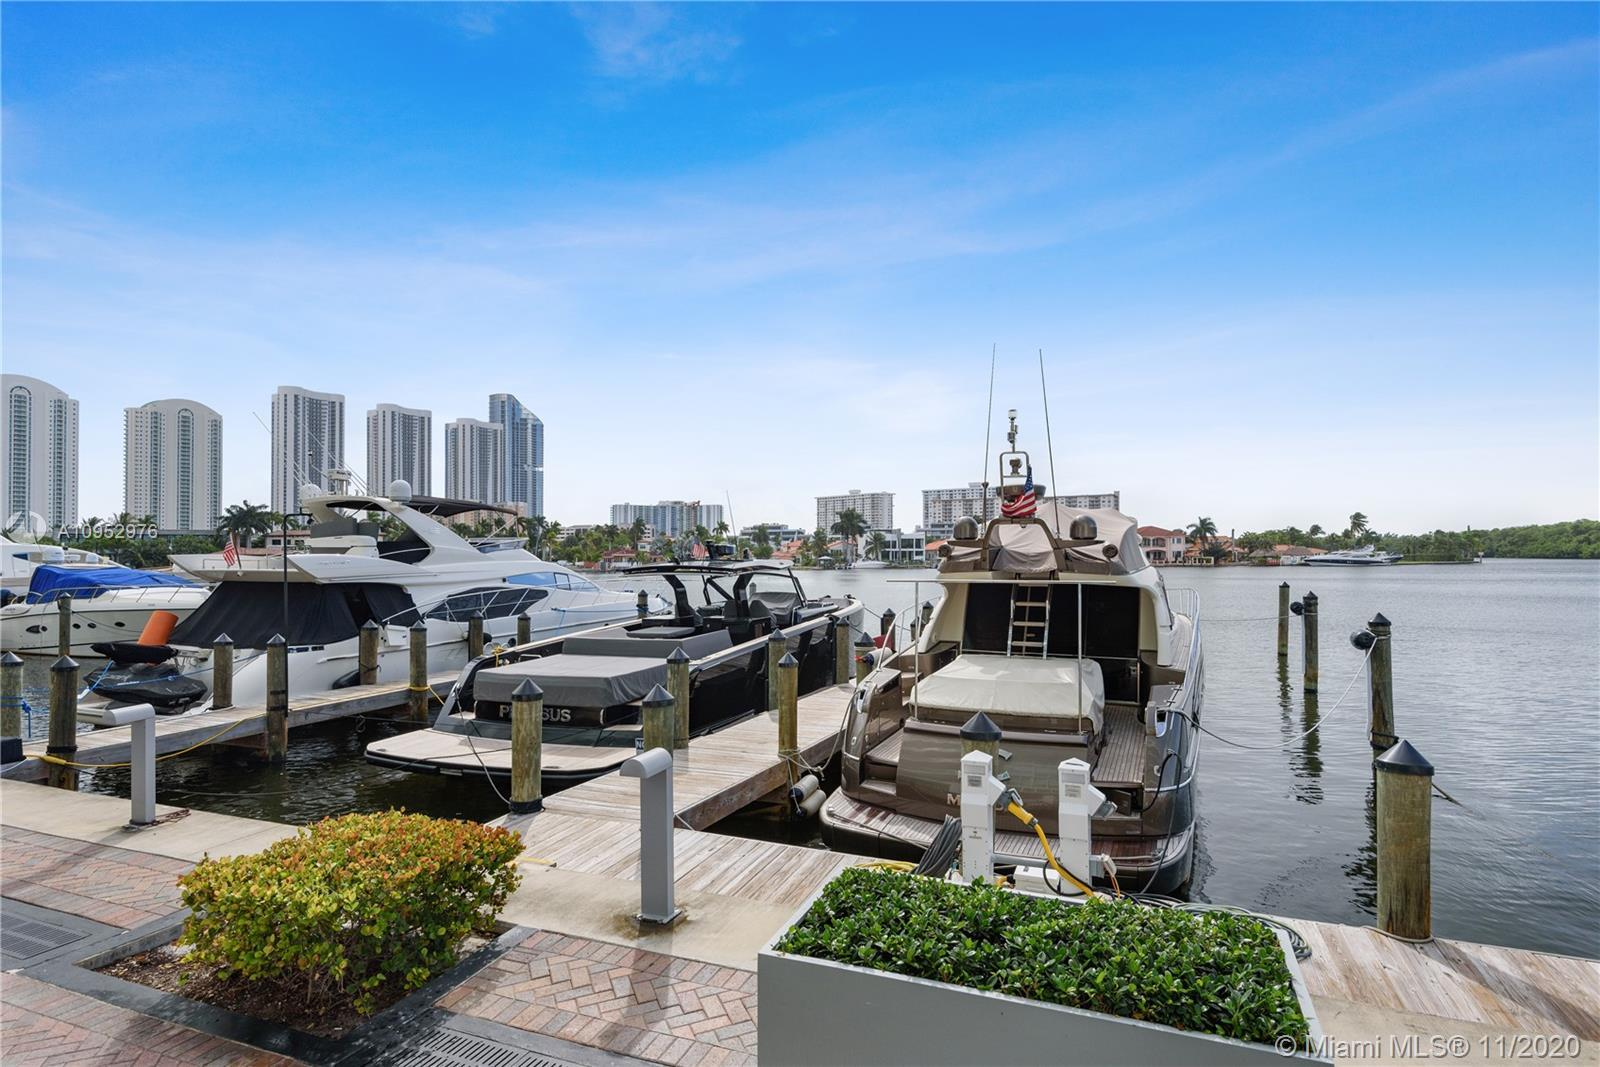 Boat lovers paradise! Enjoy beautiful views of both the marina and bay in this 2 story townhome with